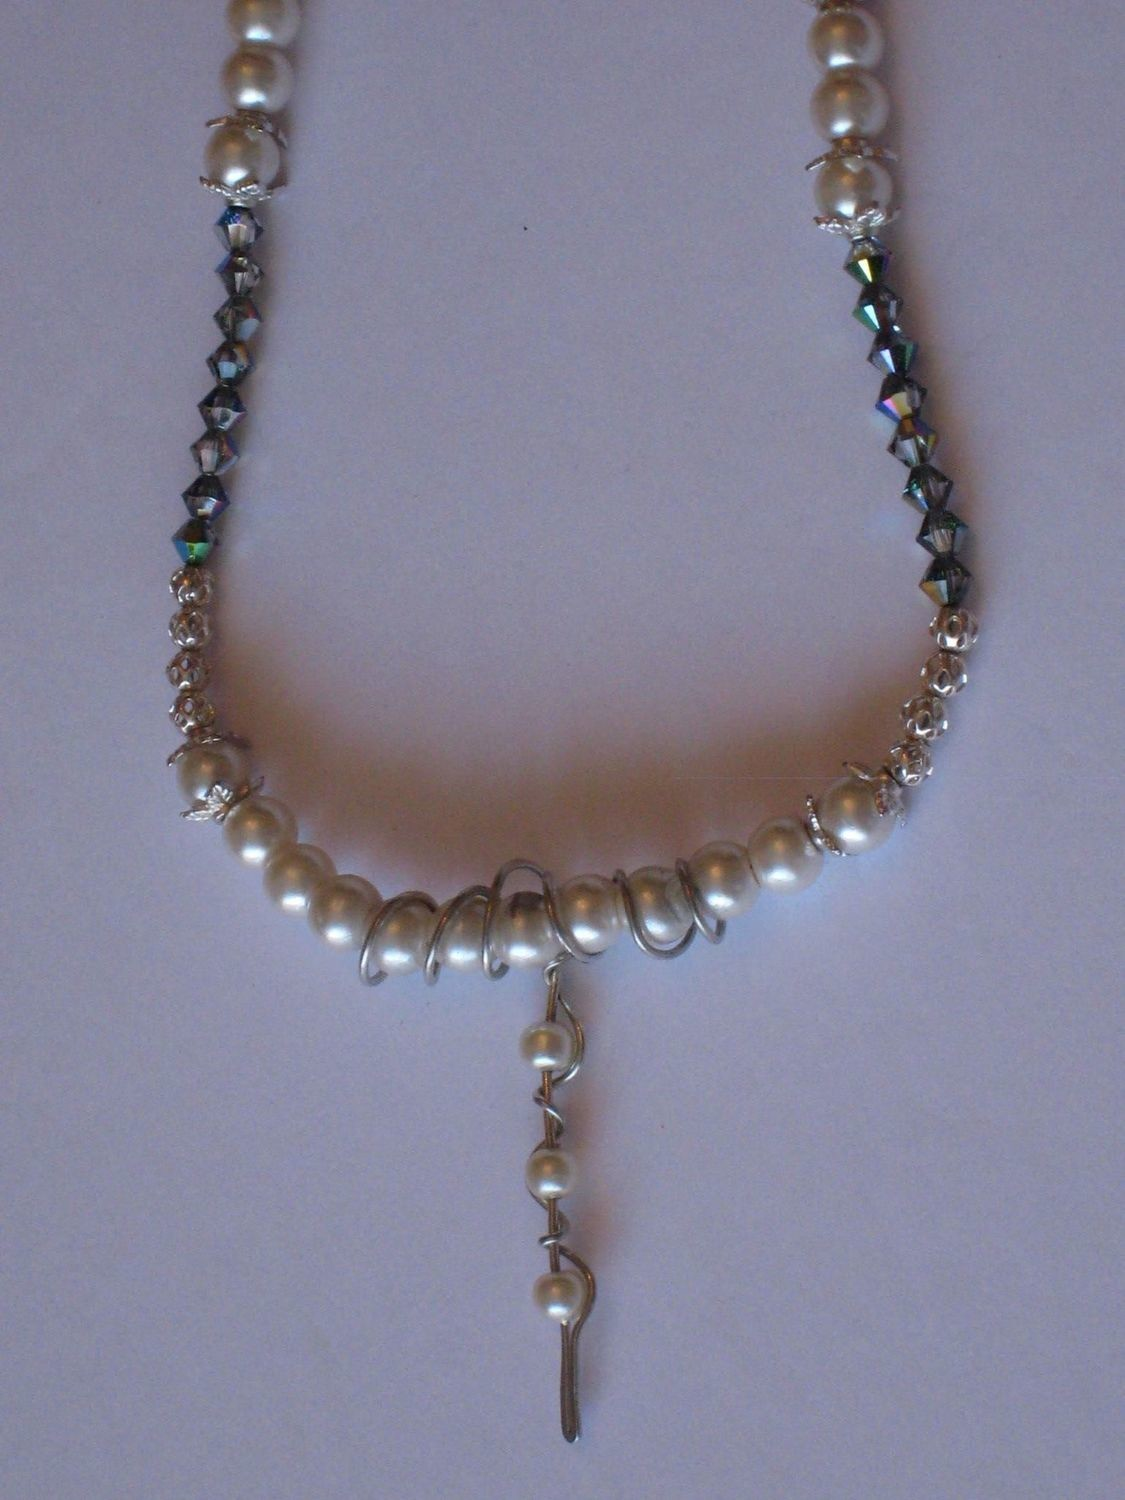 PRINCESS NECKLACE/ PRINCESSE COLLIER